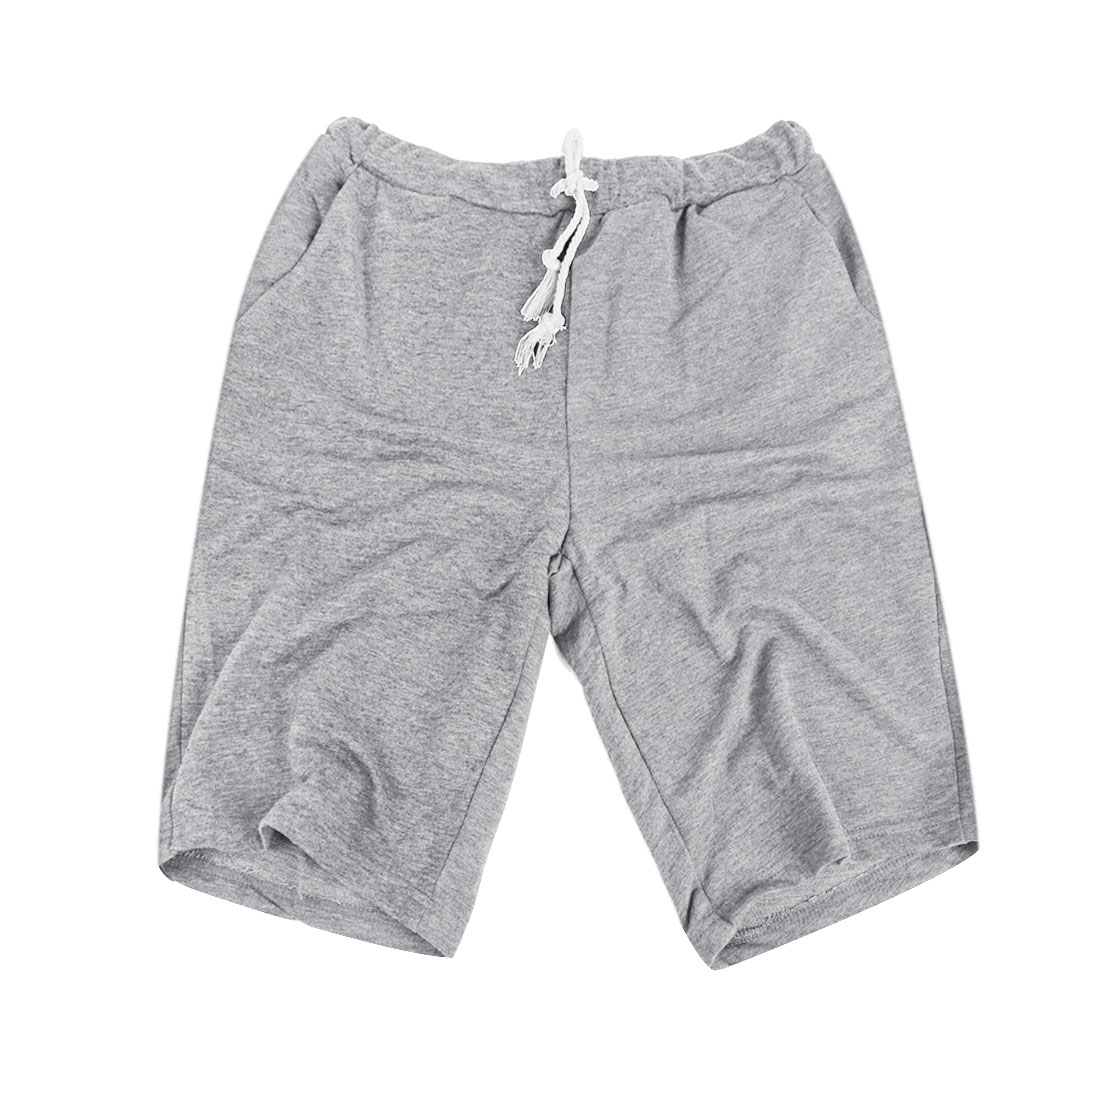 Mens With Pockets Korean Fashion Leisure Mid Rise Shorts Light Gray W29